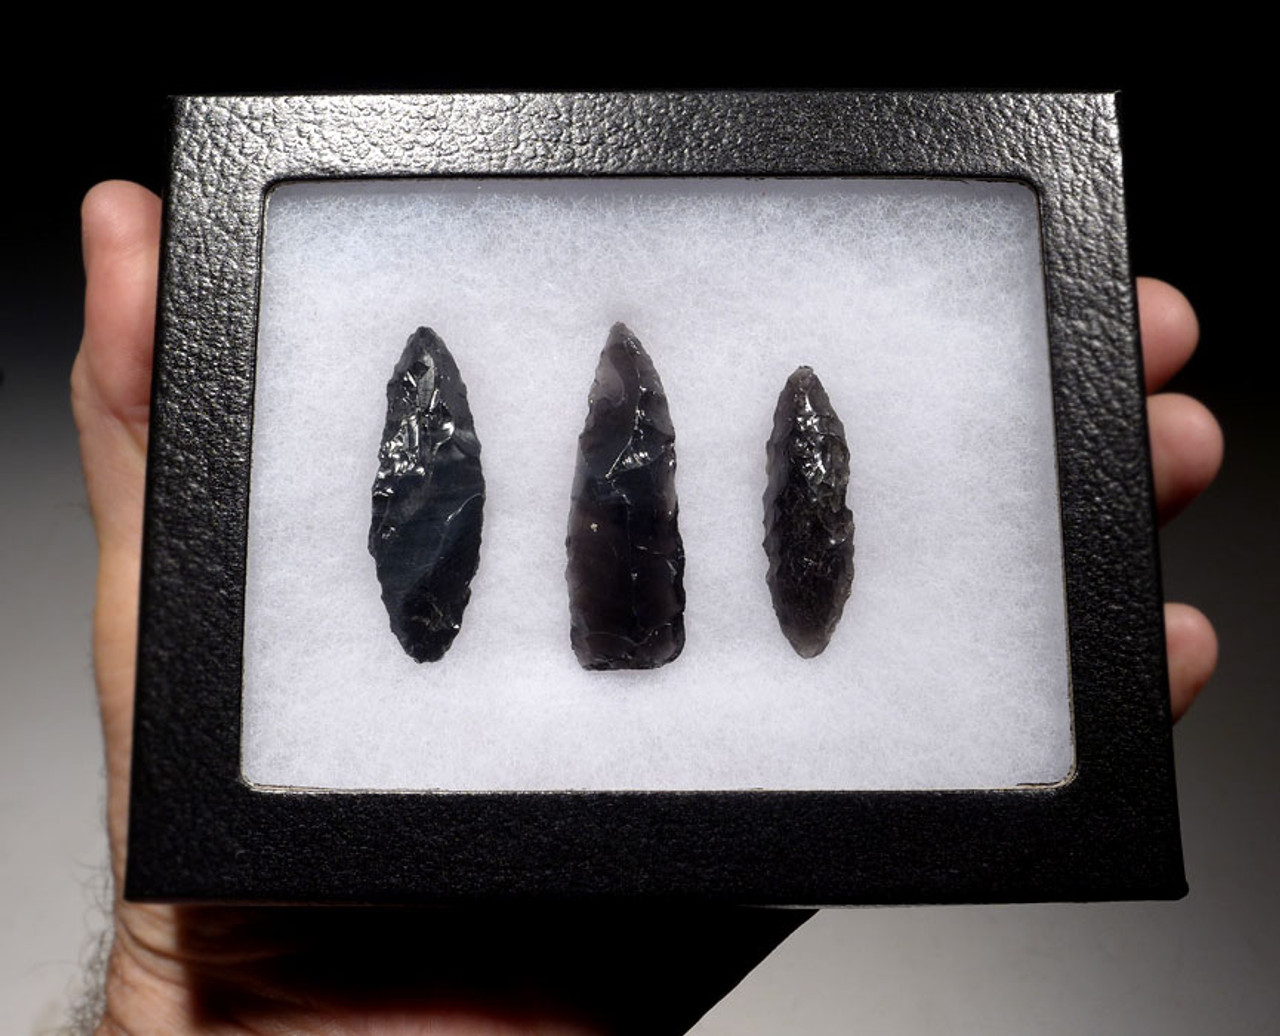 SET OF THREE PRE-COLUMBIAN OBSIDIAN ARROWHEADS FROM THE FAMOUS HEFLIN COLLECTION *PC252